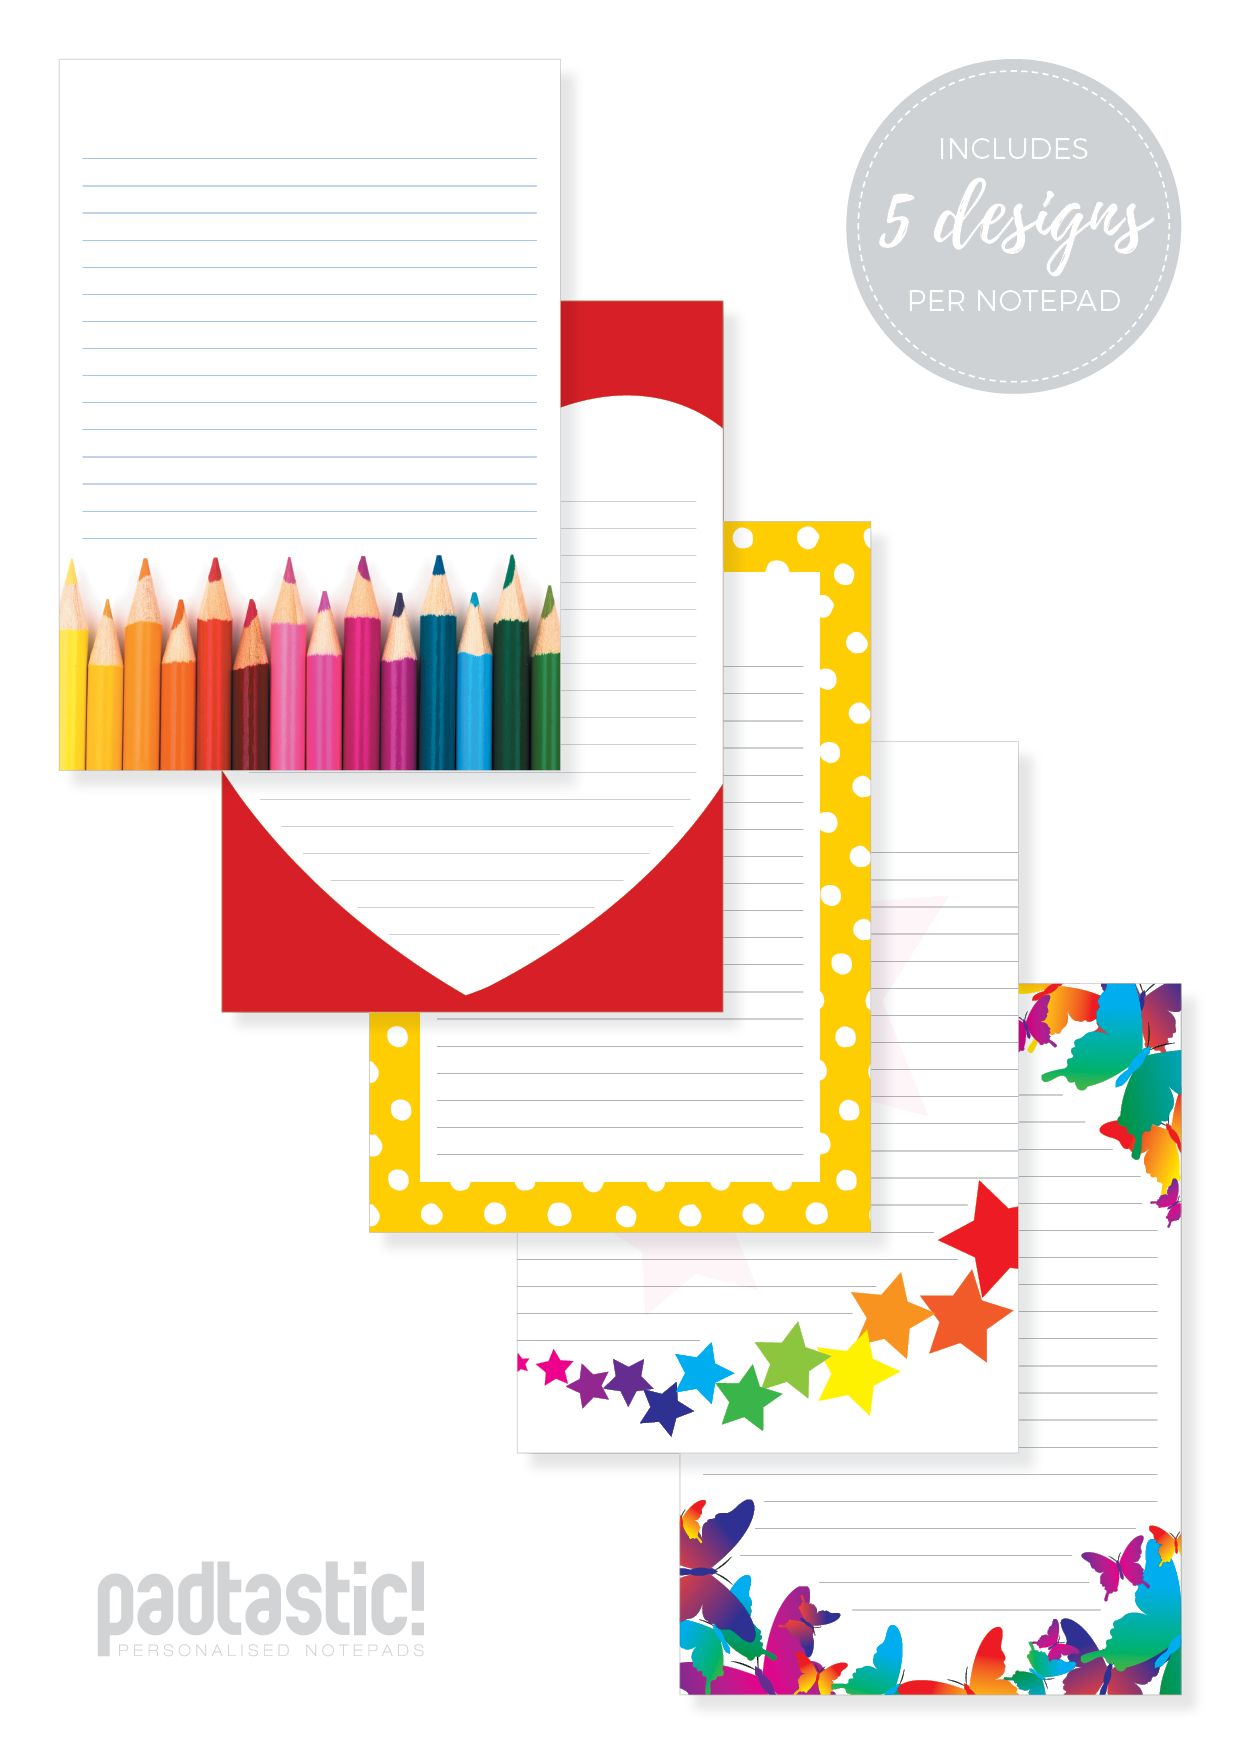 Notepad clipart notepad line. Bold bright mixed design